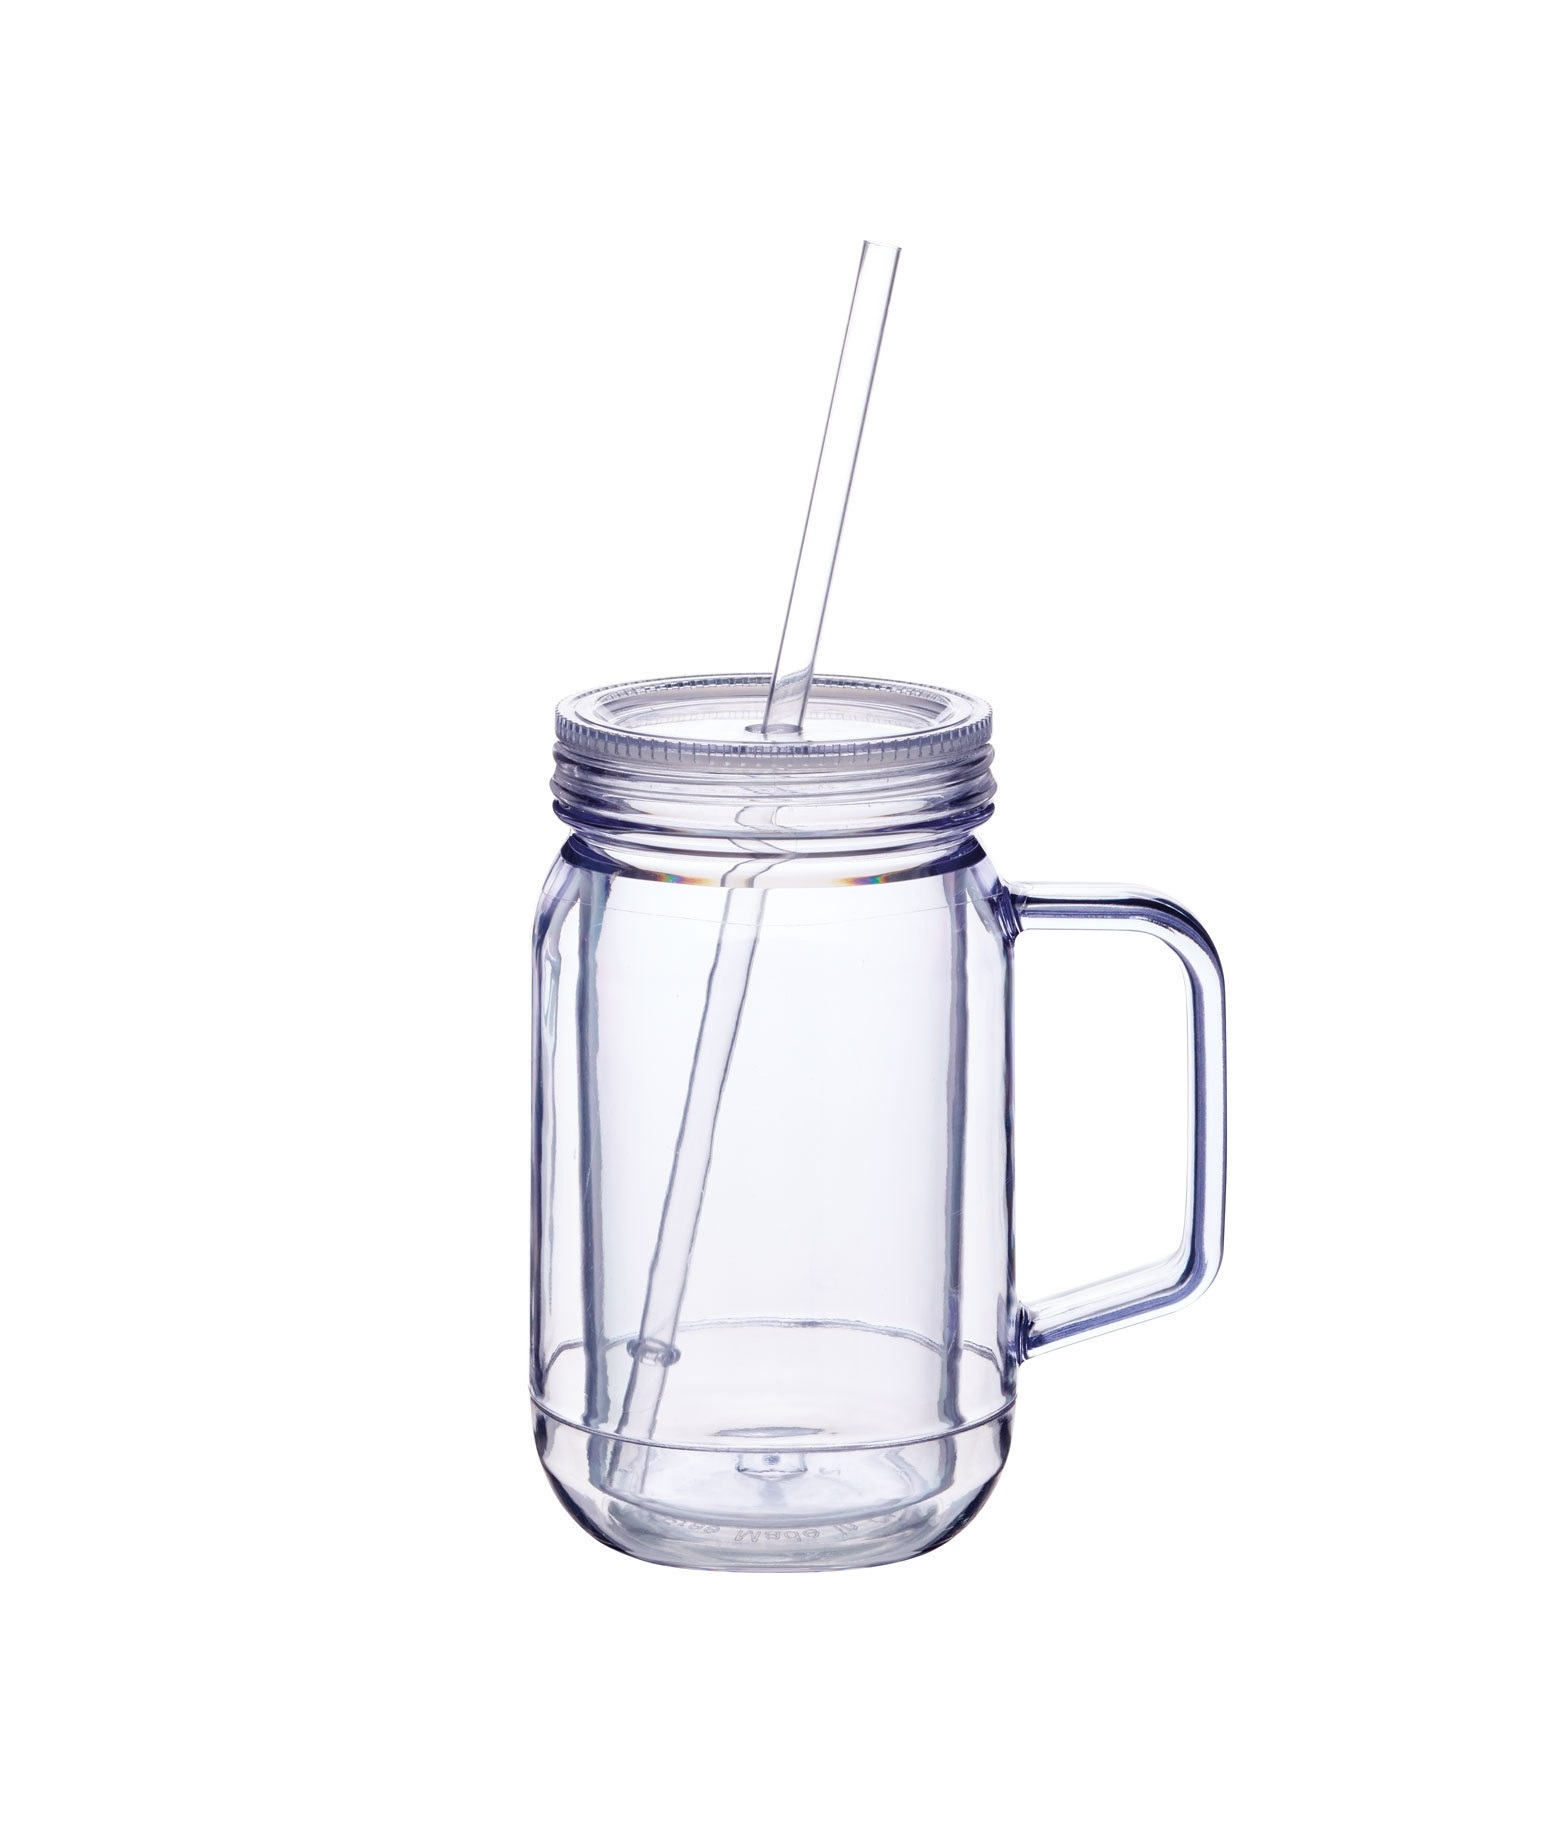 Glassware Drinking Barcraft 400ml Double Walled Drinks Jar Glassware